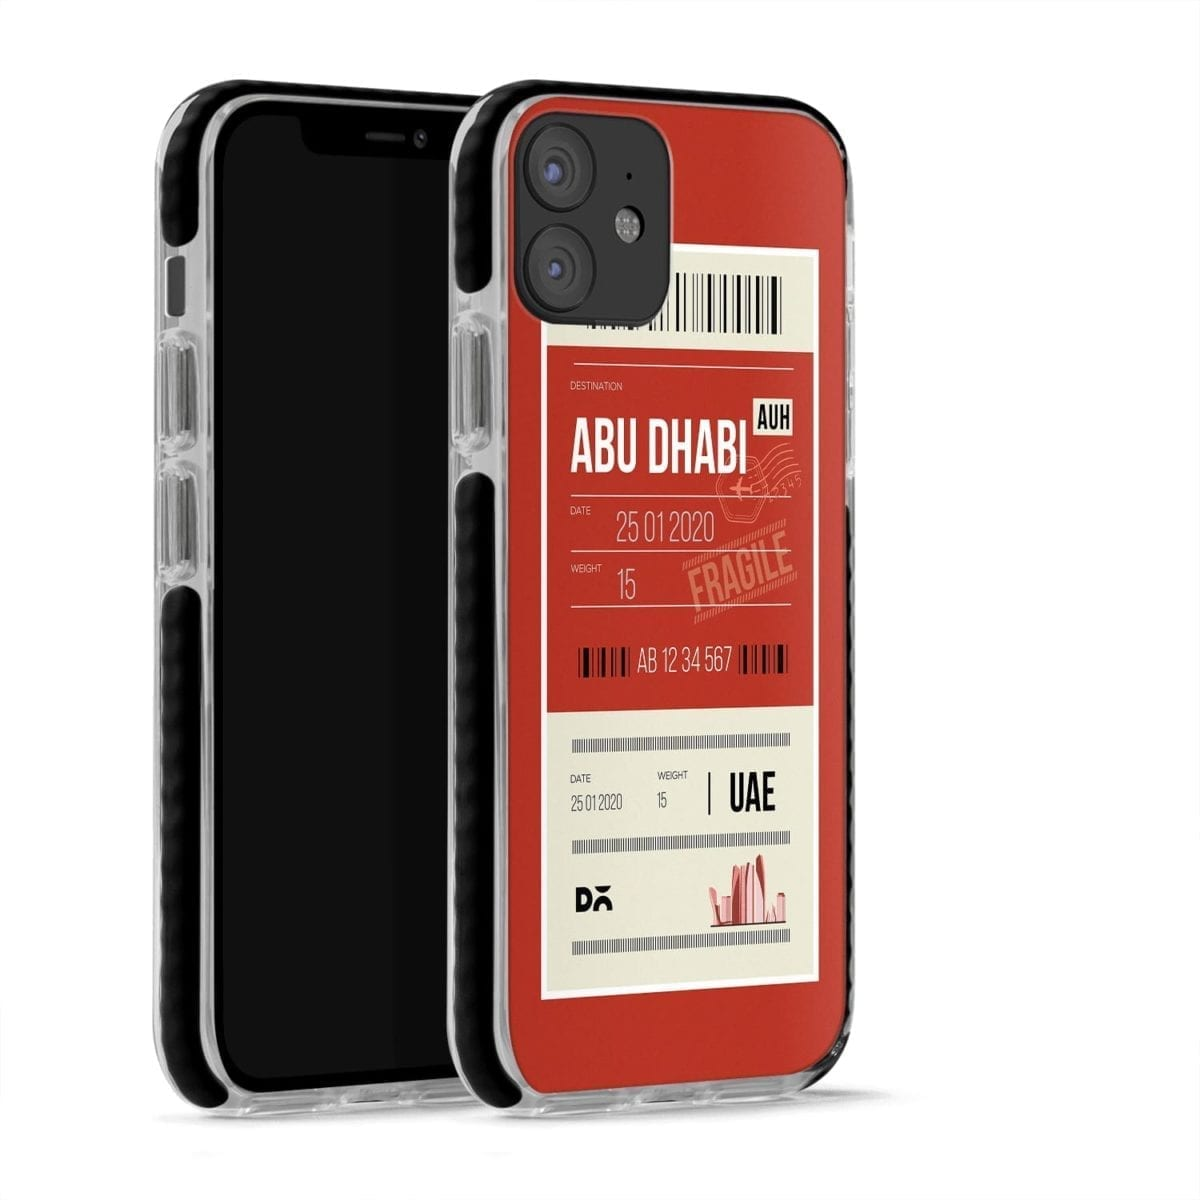 Abu Dhabi Case Cover for Apple iPhone 12 Mini and Apple iPhone 12 with great design and shock proof | Klippik | Online Shopping | Kuwait UAE Saudi